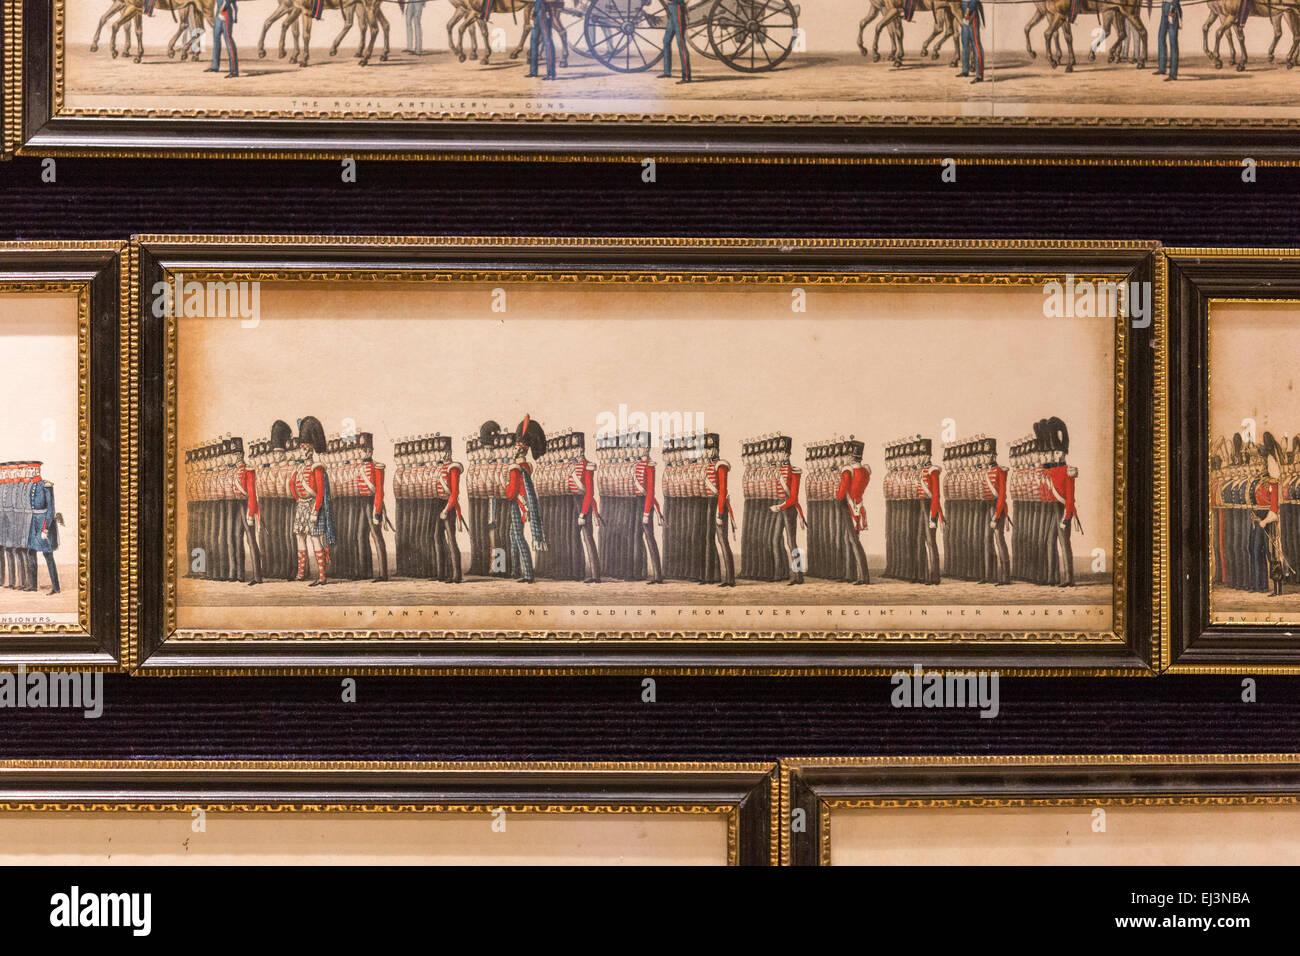 London, UK. 20 March 2015. Pictured: The Funeral Procession of Arthur, Duke of Wellington, 46 sheets of paper. More - Stock Image